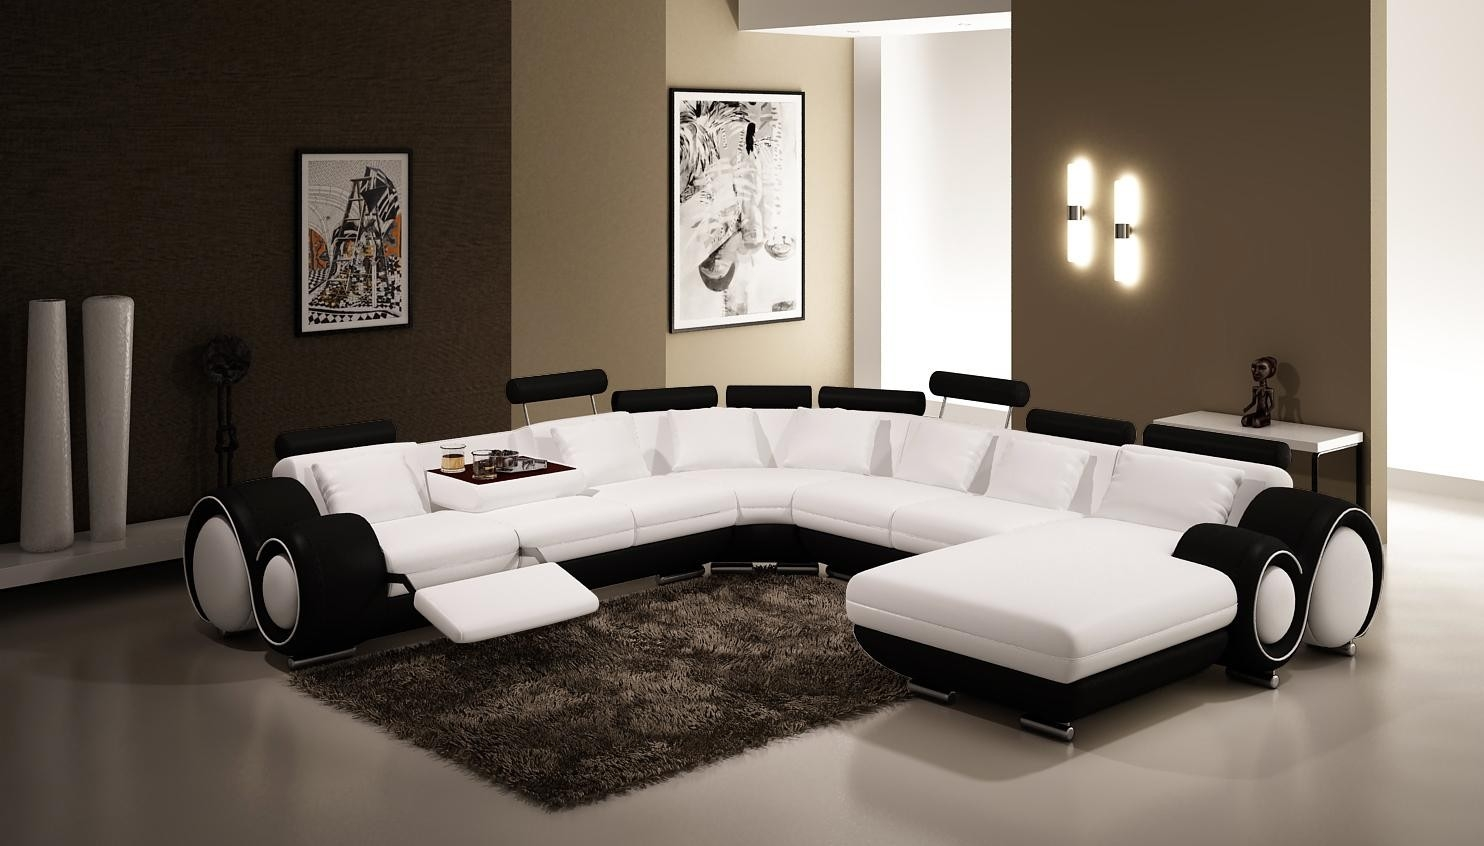 Vig Furniture 4084 Contemporary Black And White Leather Sectional Sofa Inside Black And White Sectional Sofa (#11 of 12)